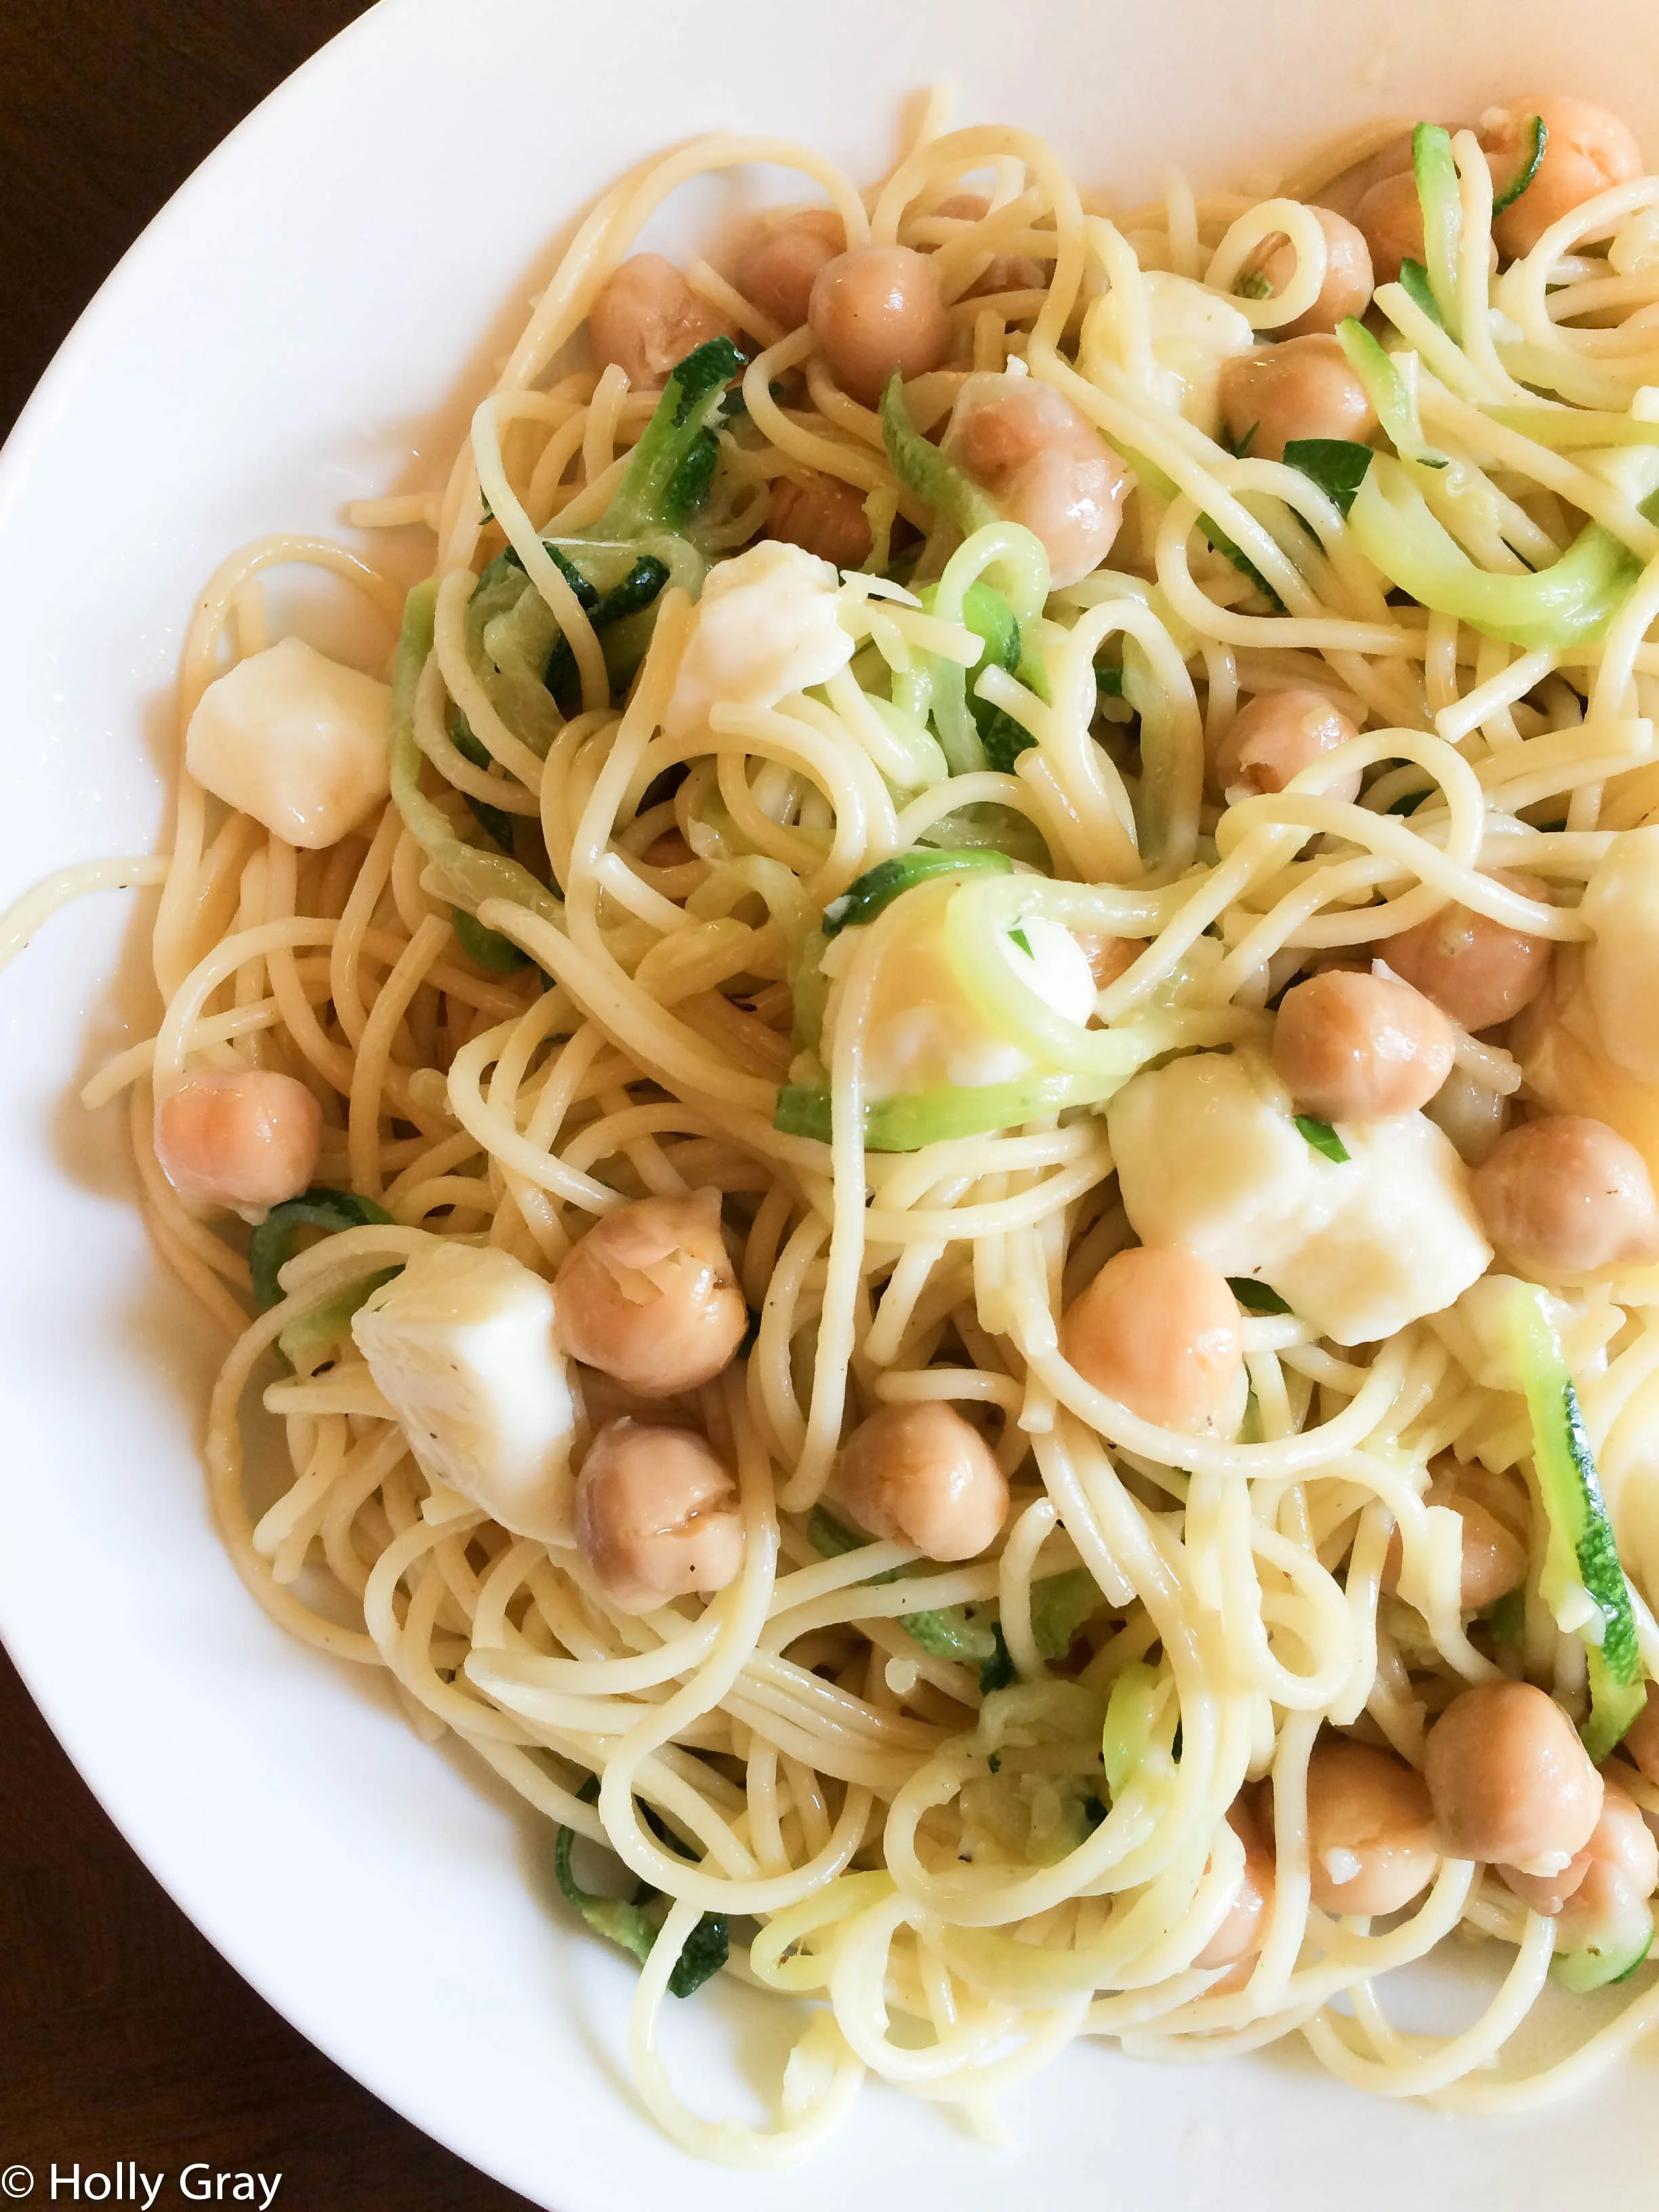 Zucchini Noodles and Spaghetti Pasta Olio with Chickpeas and Mozzarella